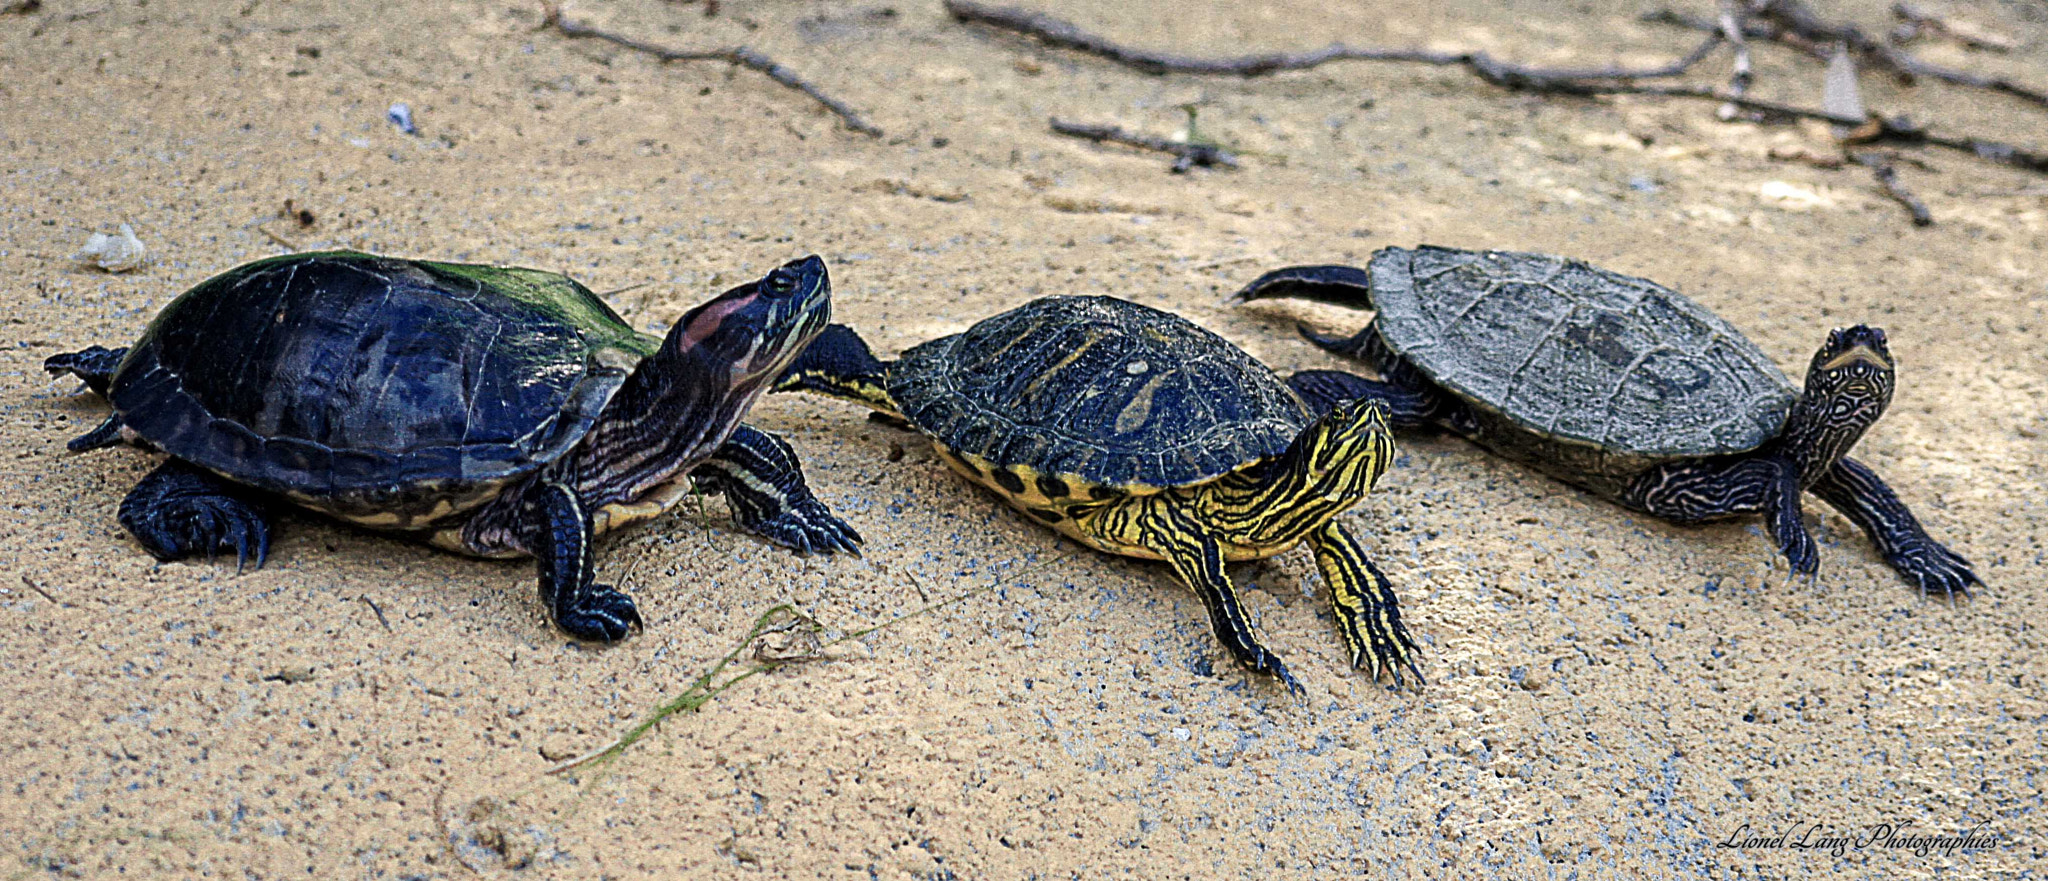 Photograph turtles by Lionel Lang on 500px